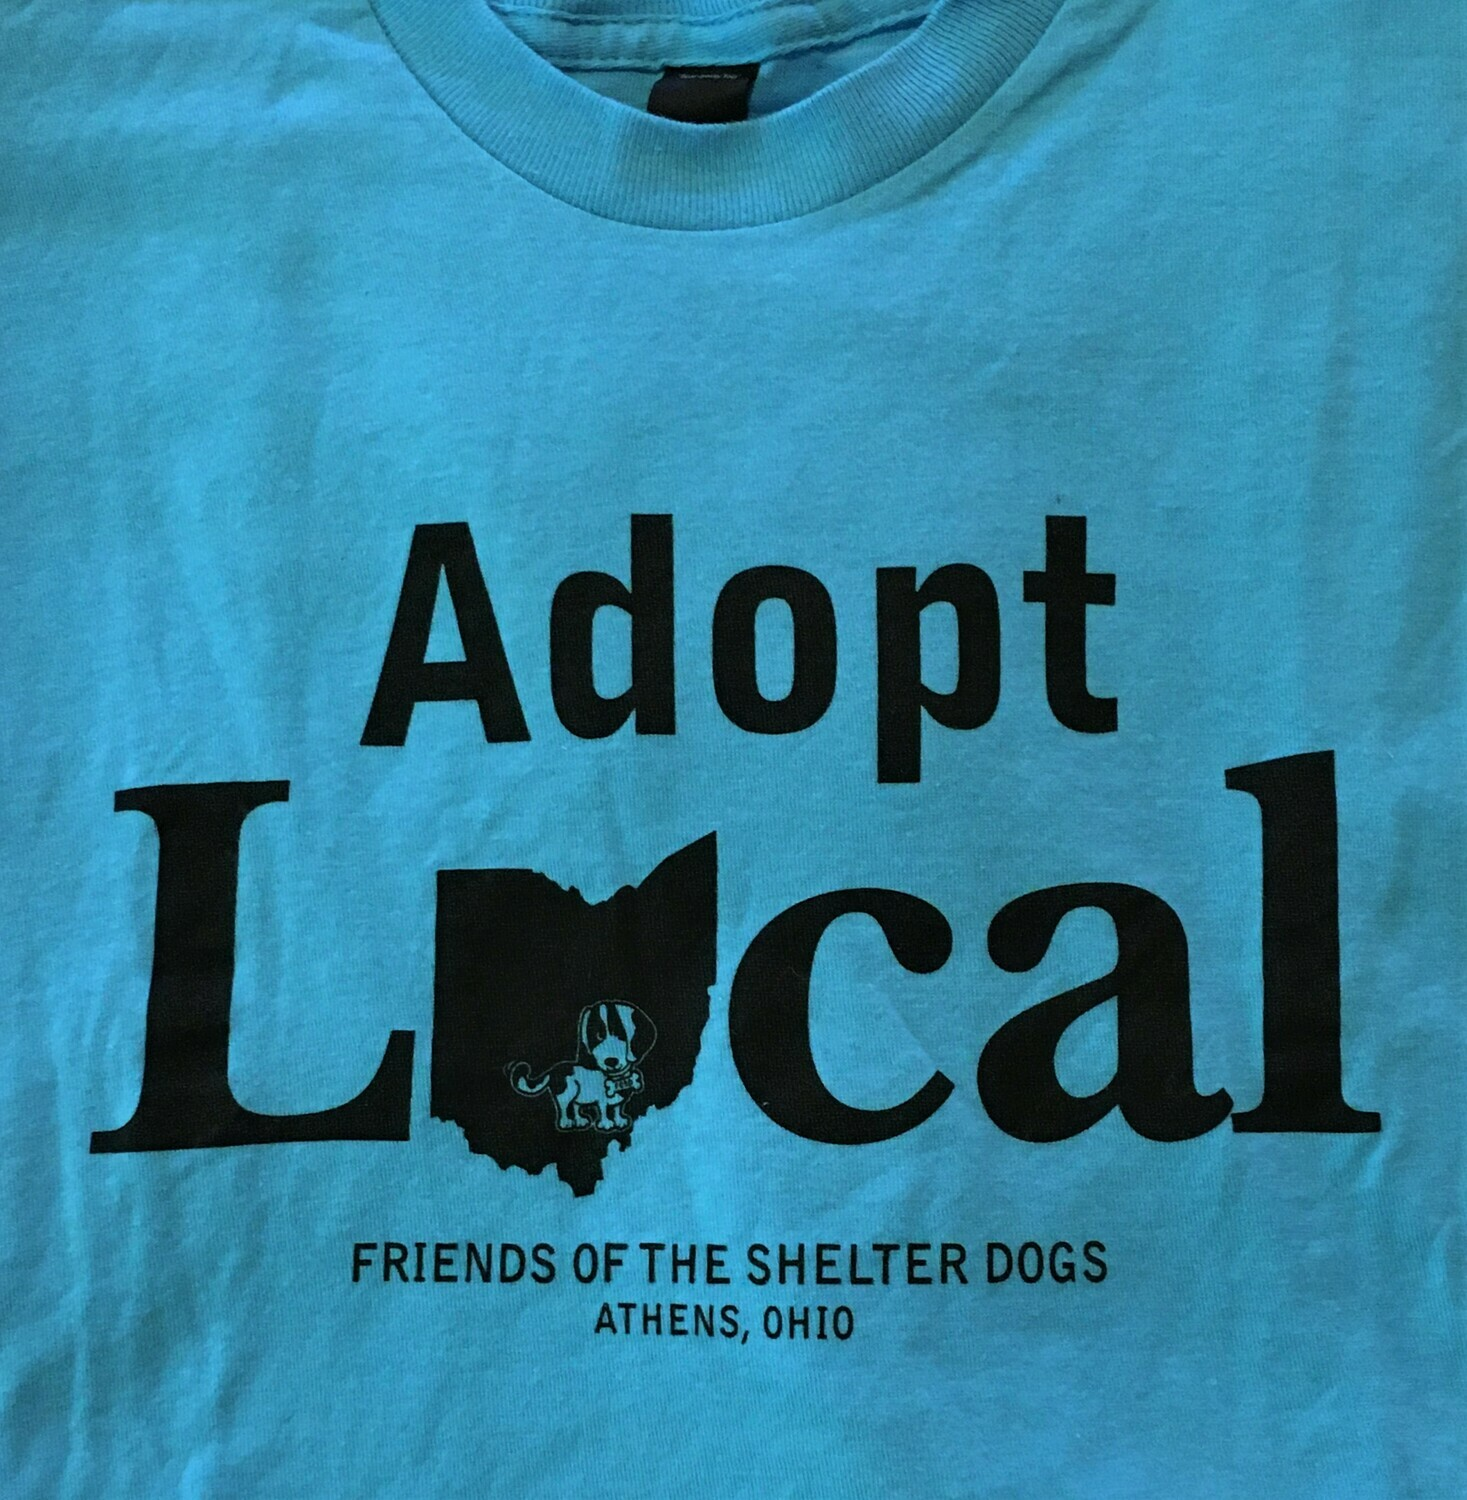 Friends of the Shelter Dogs  'Adopt Local' Short Sleeve T-Shirt - Blue.